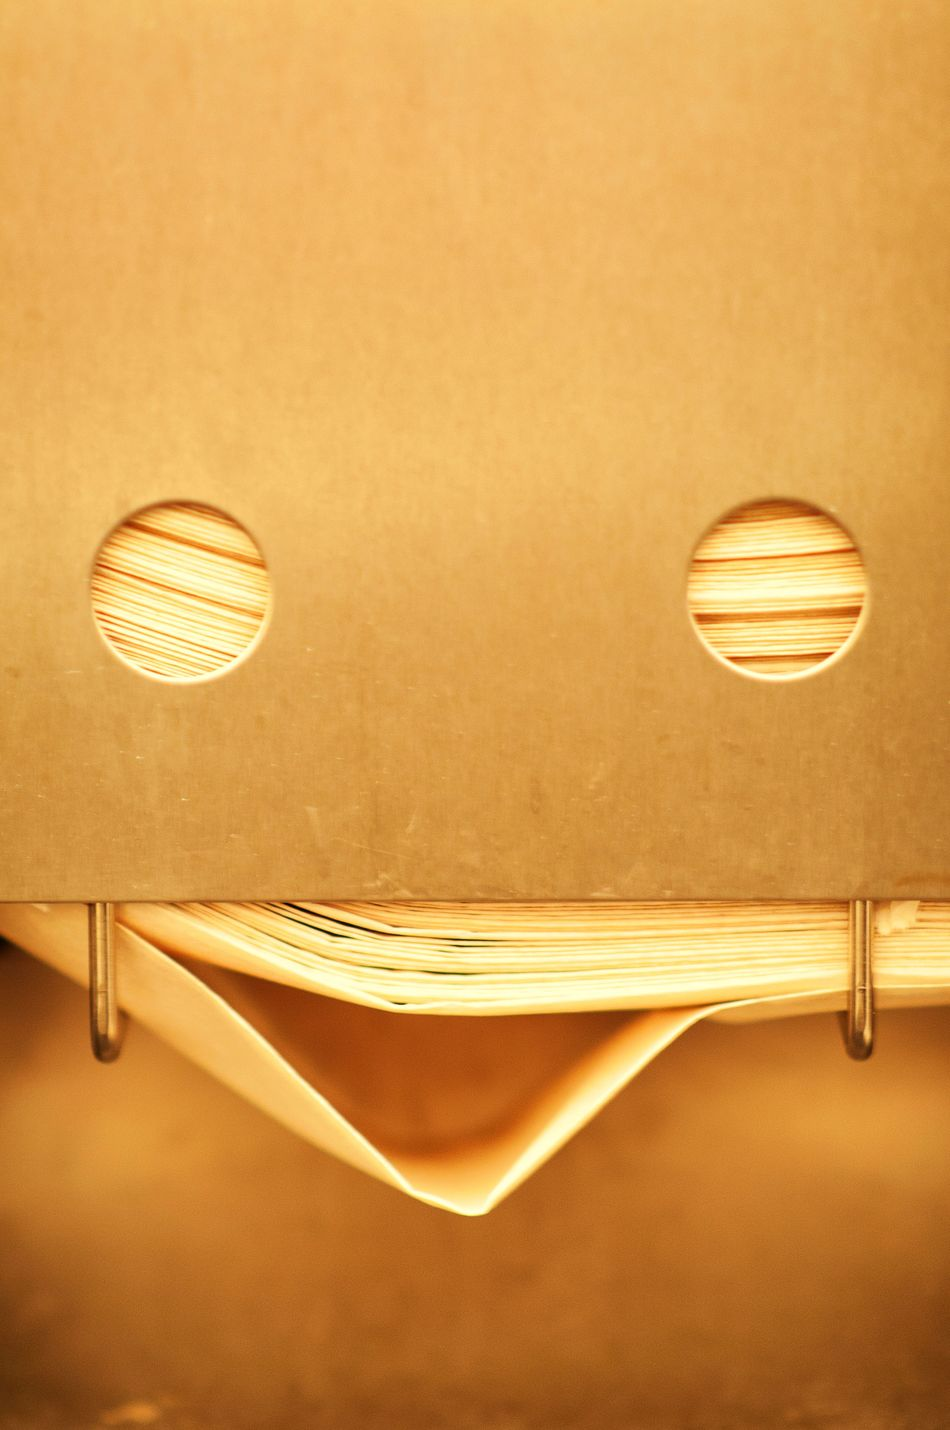 Creativity Day Dont Worry Dont Worry Be Happy Illuminated Indoors  Lighting Equipment Low Angle View Lächeln Maximum Closeness No People Smiley Smiley :) Smiley Face Table Technology